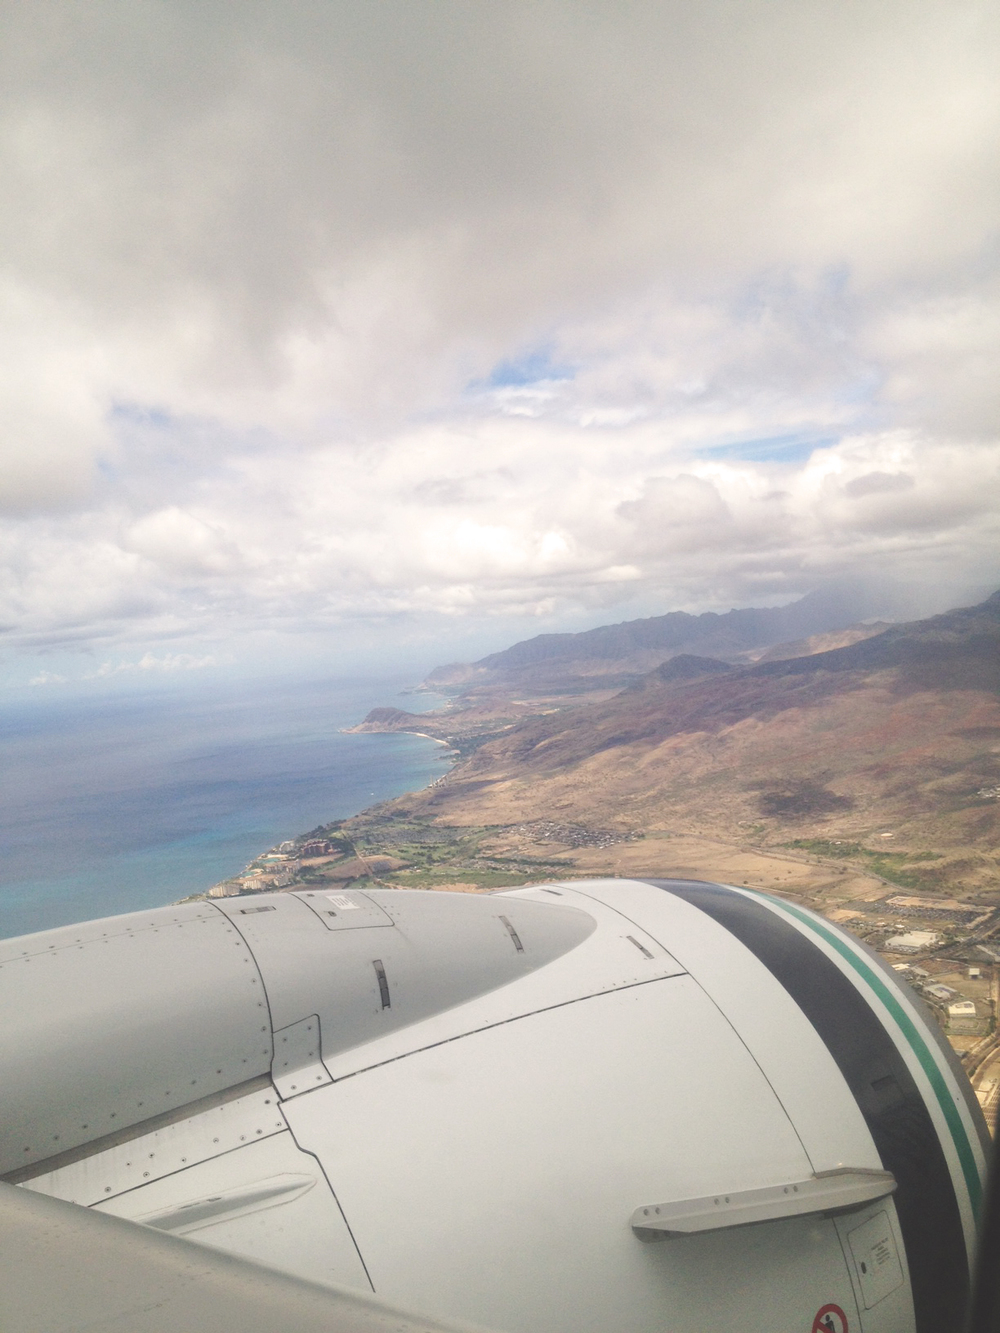 View of Oahu on the West Side of the island